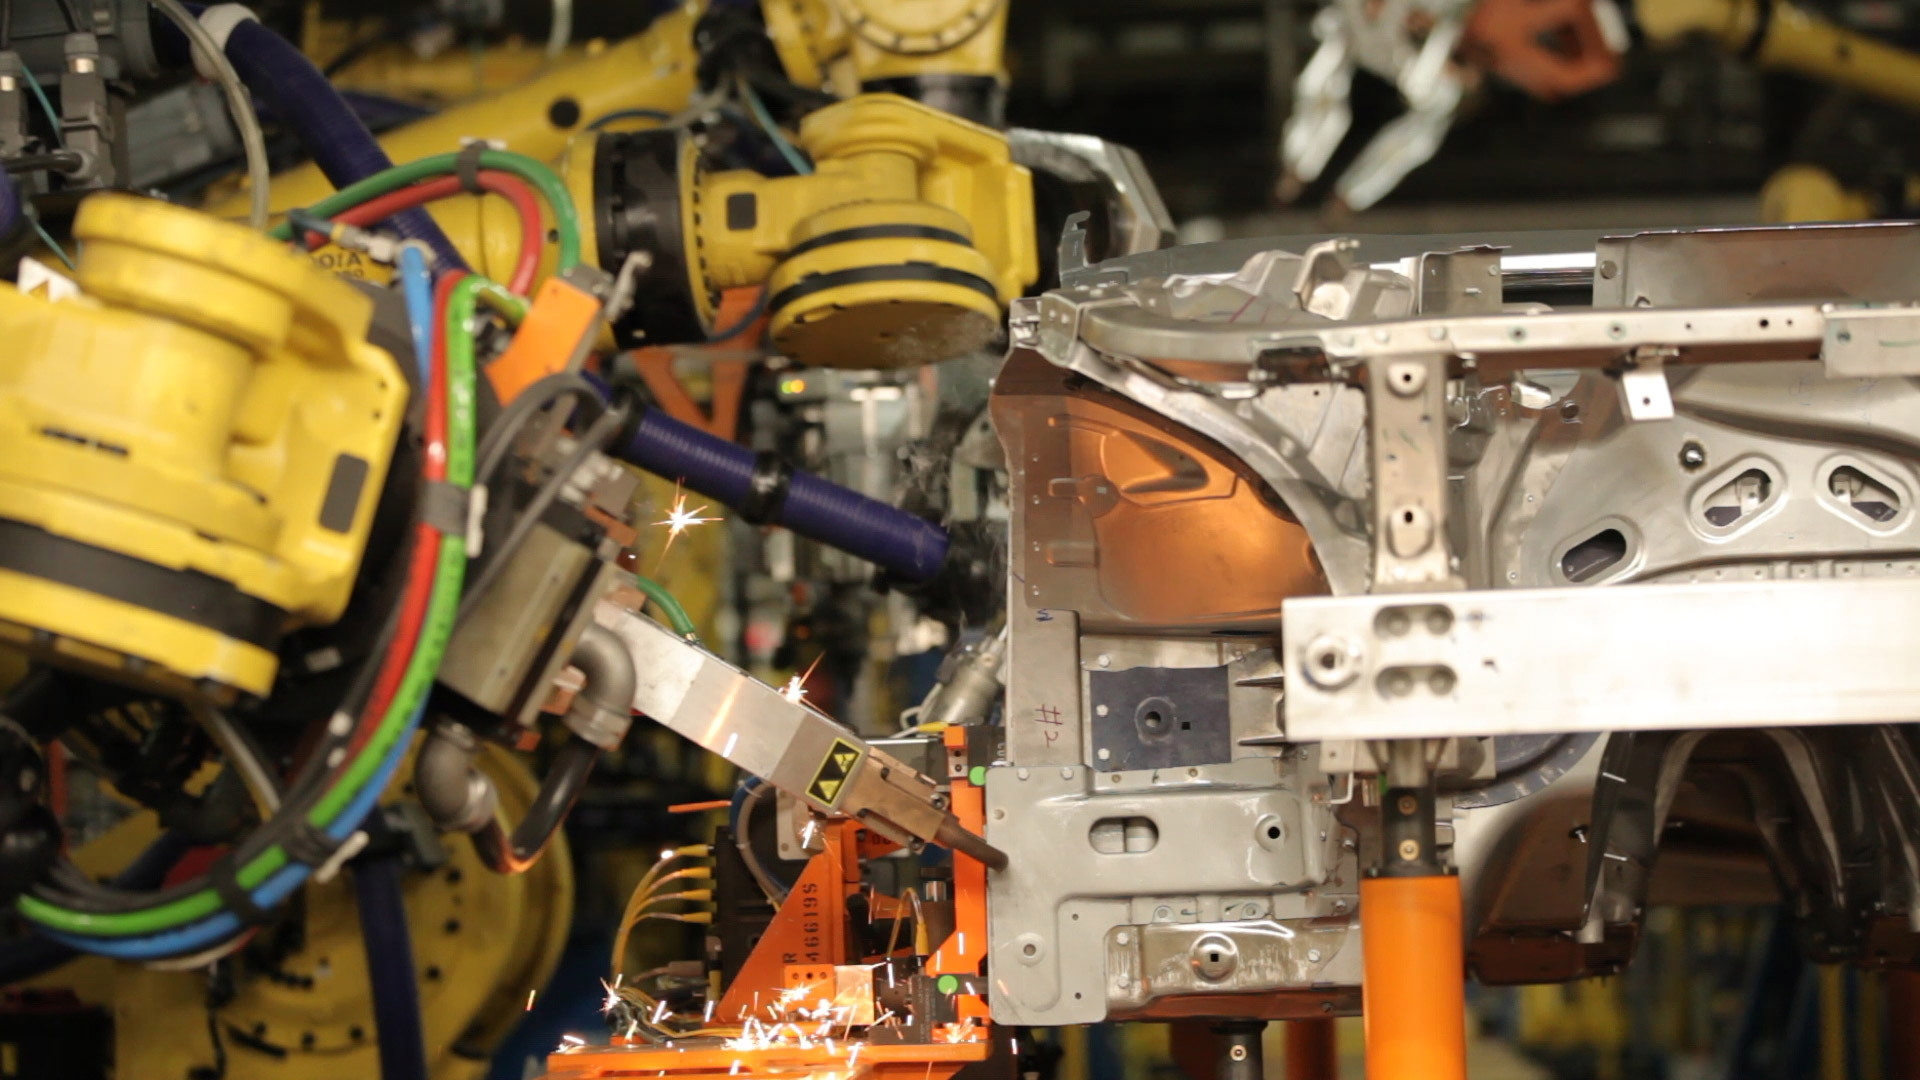 2016 Cadillac CT6 under construction at GM's Detroit-Hamtramck plant in Michigan